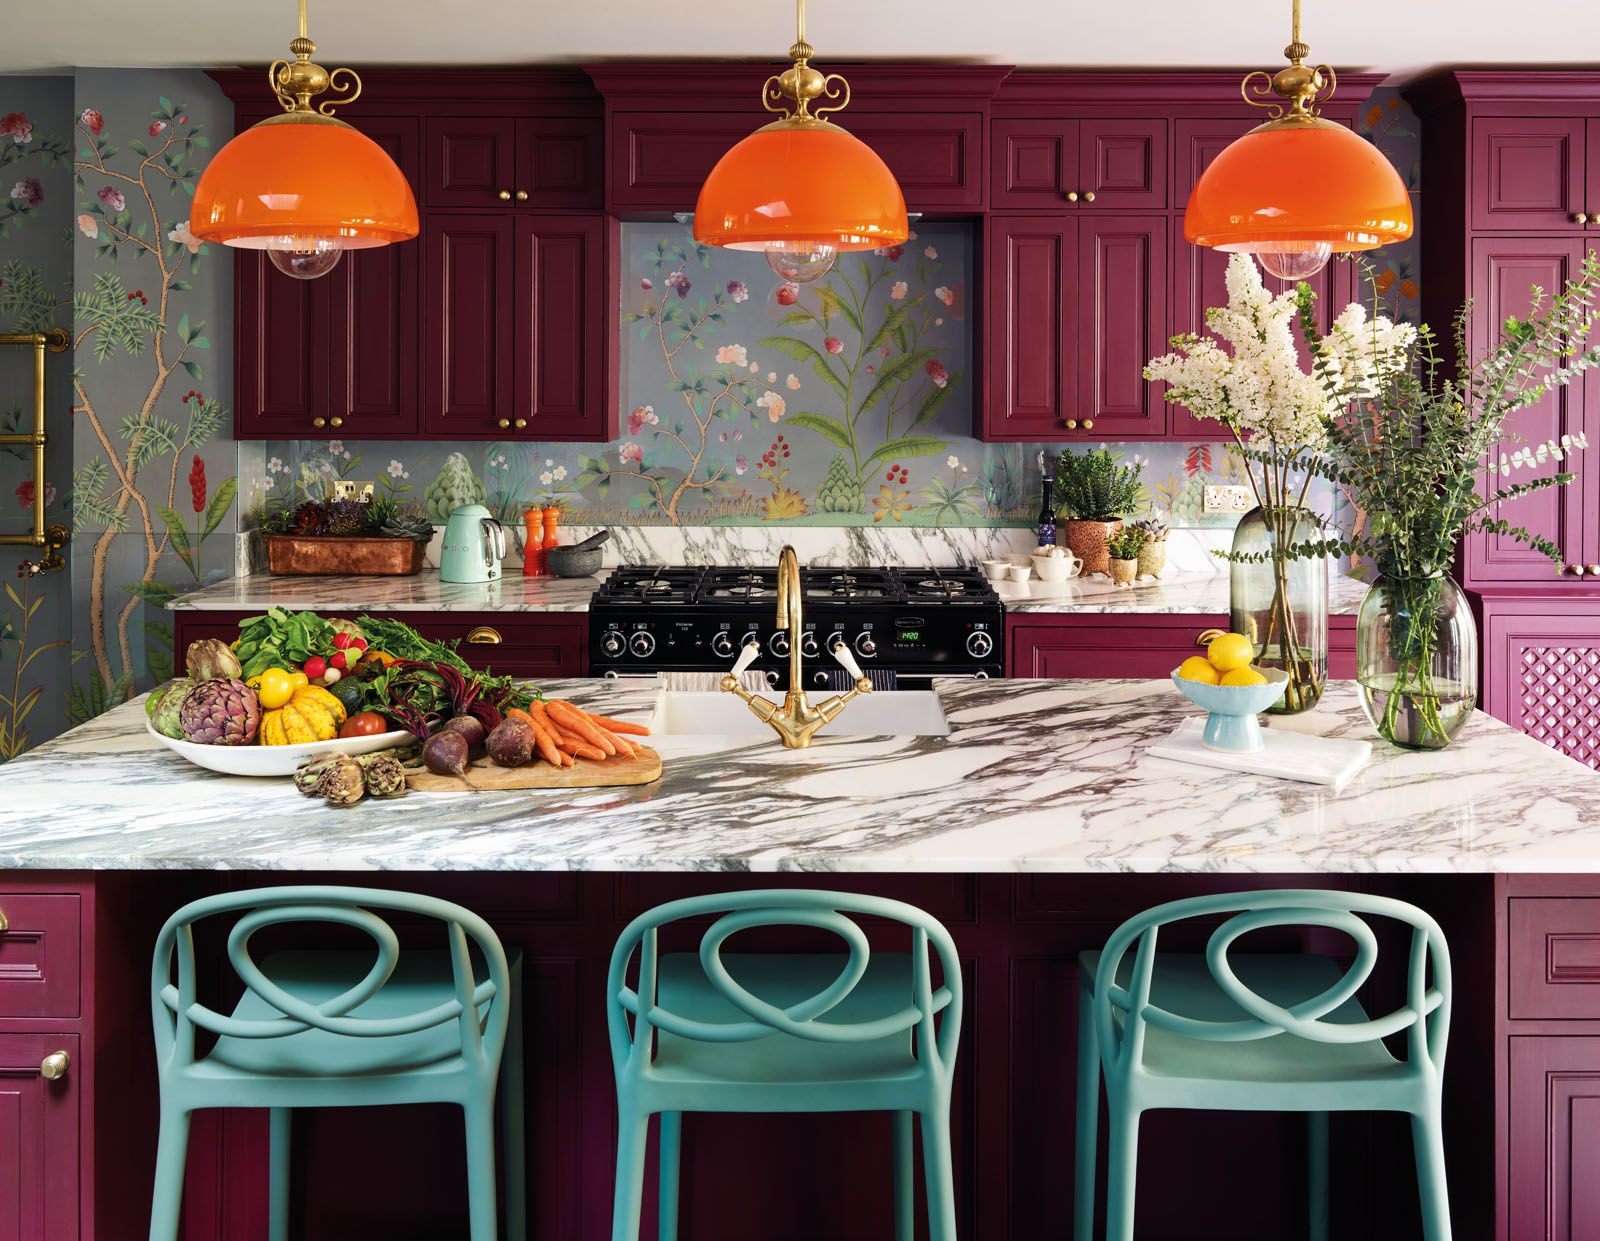 The purple cabinetry adds to the retro look of the kitchen